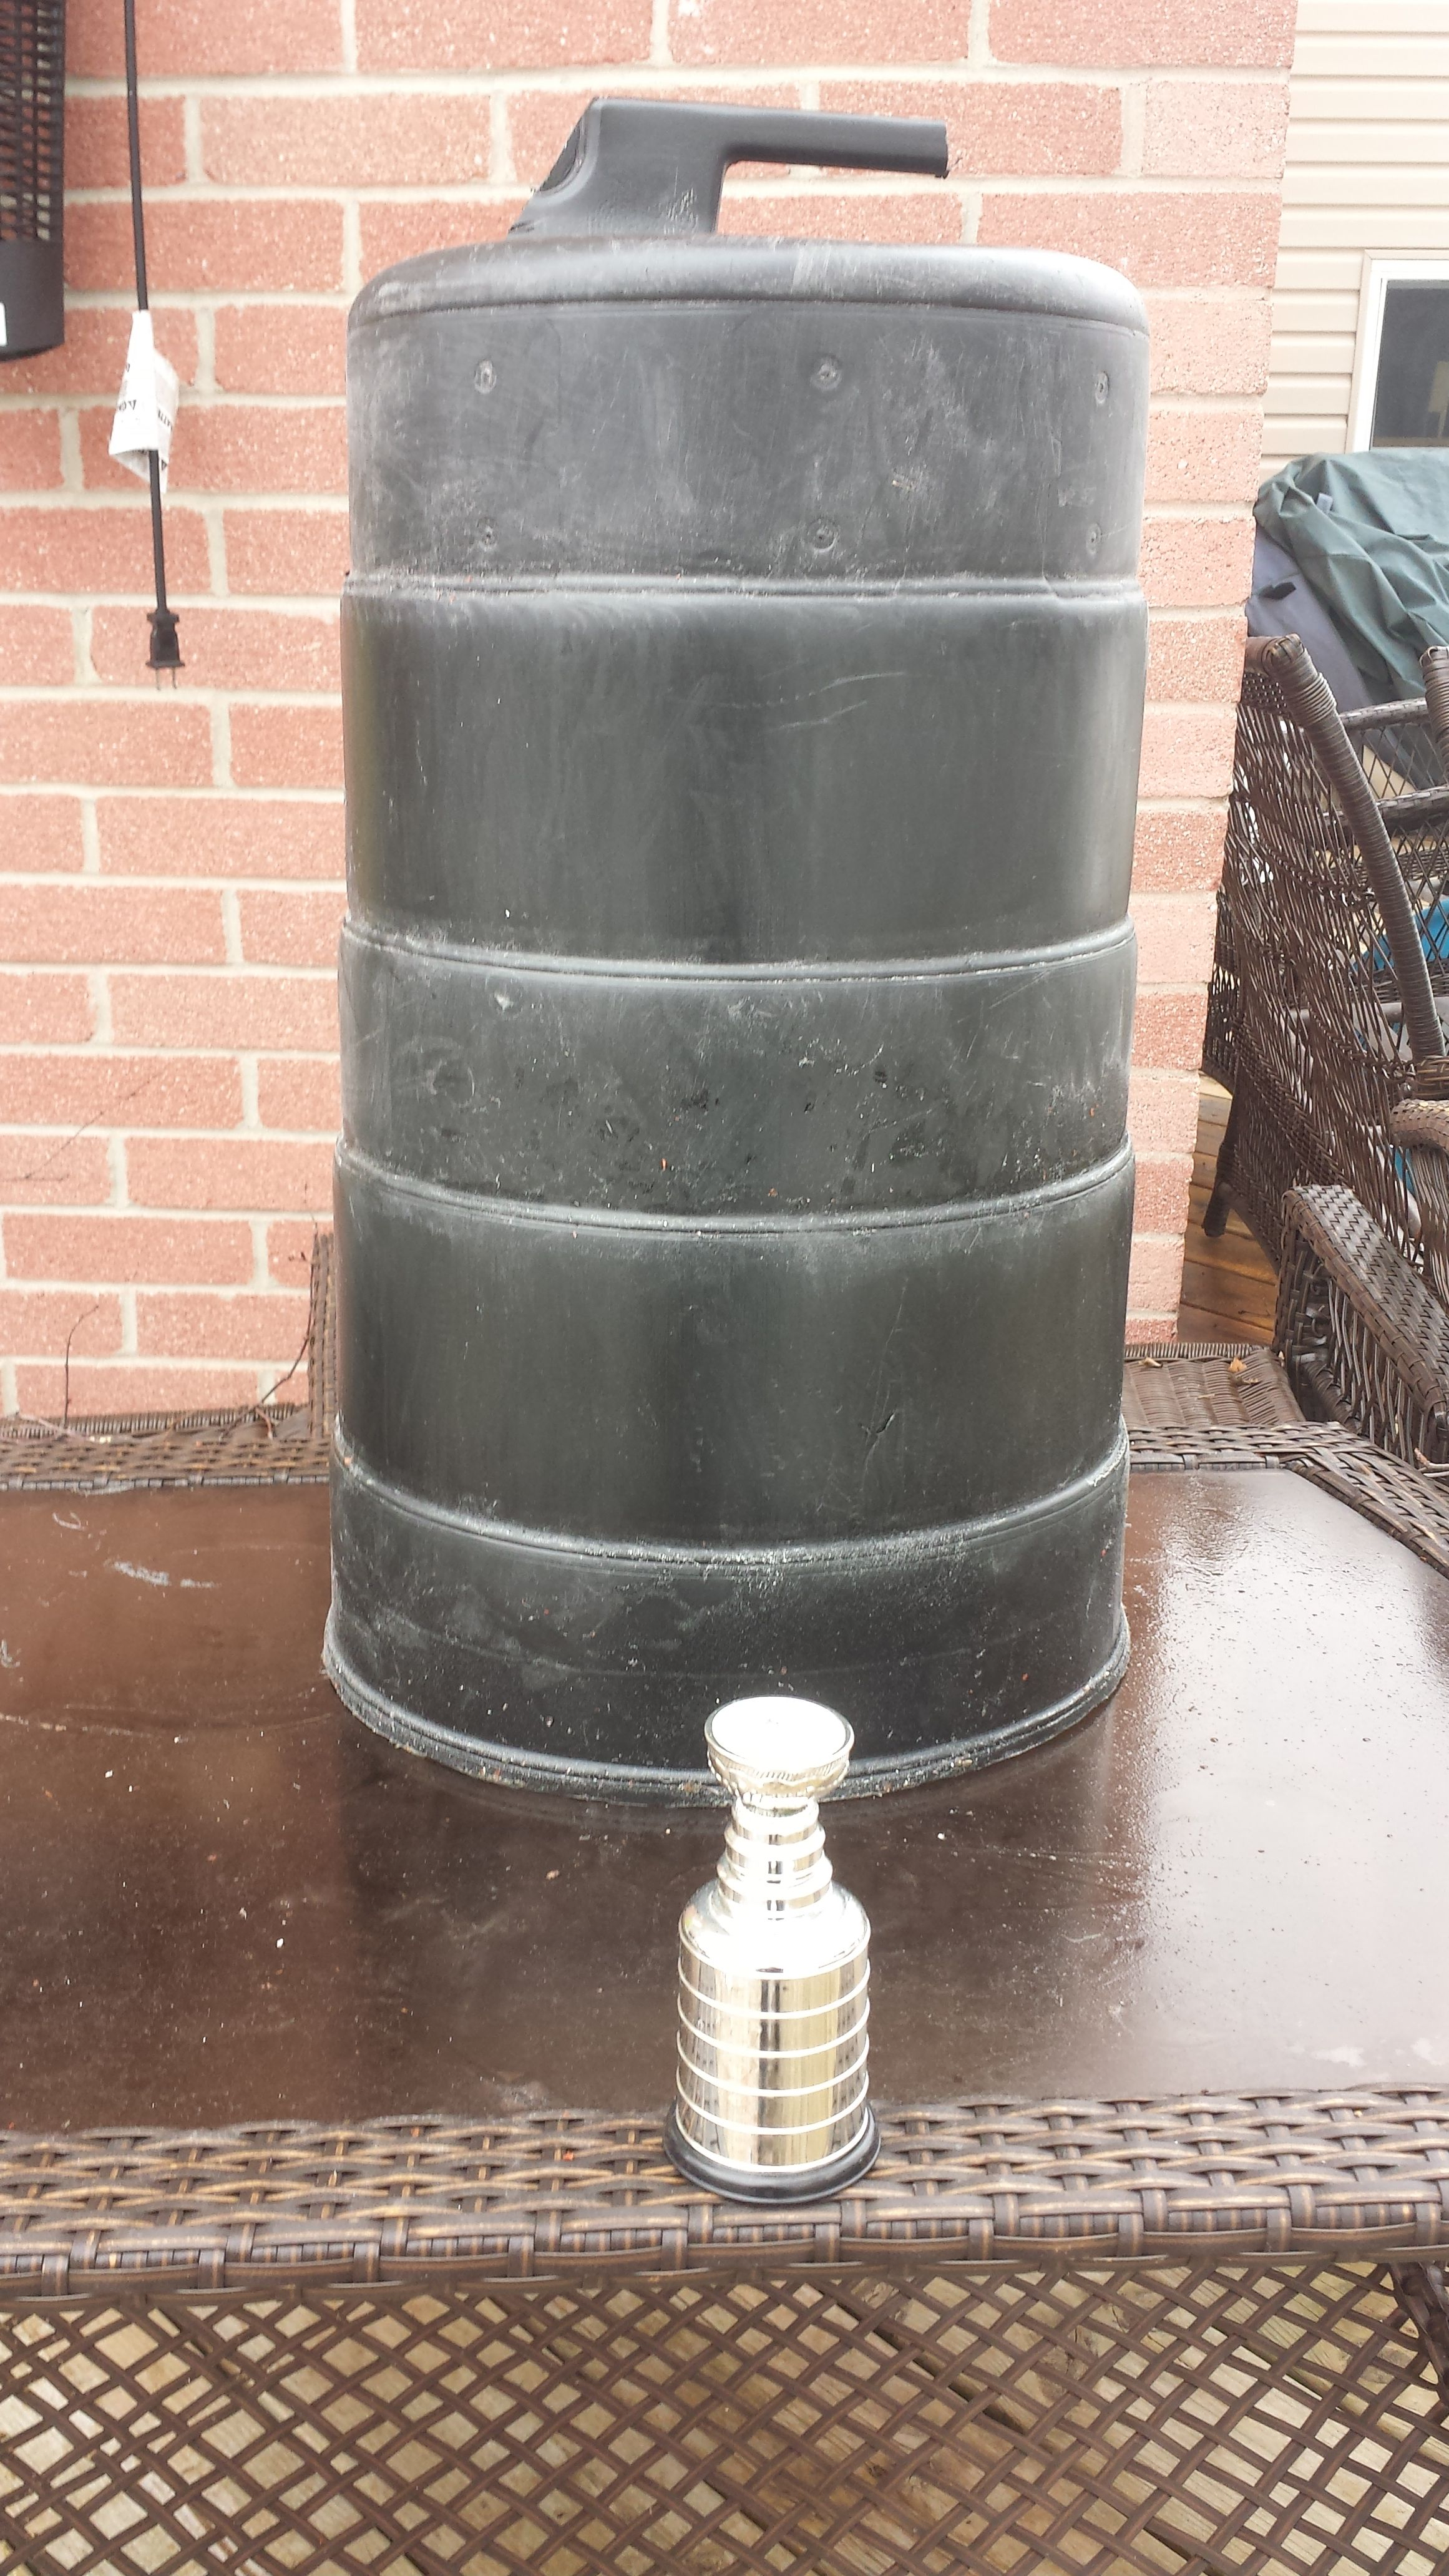 1. in the beginning a traffic cone with 5 tiers and the stickers removed and the handle cut down to allow the next tier to fit on top properly.